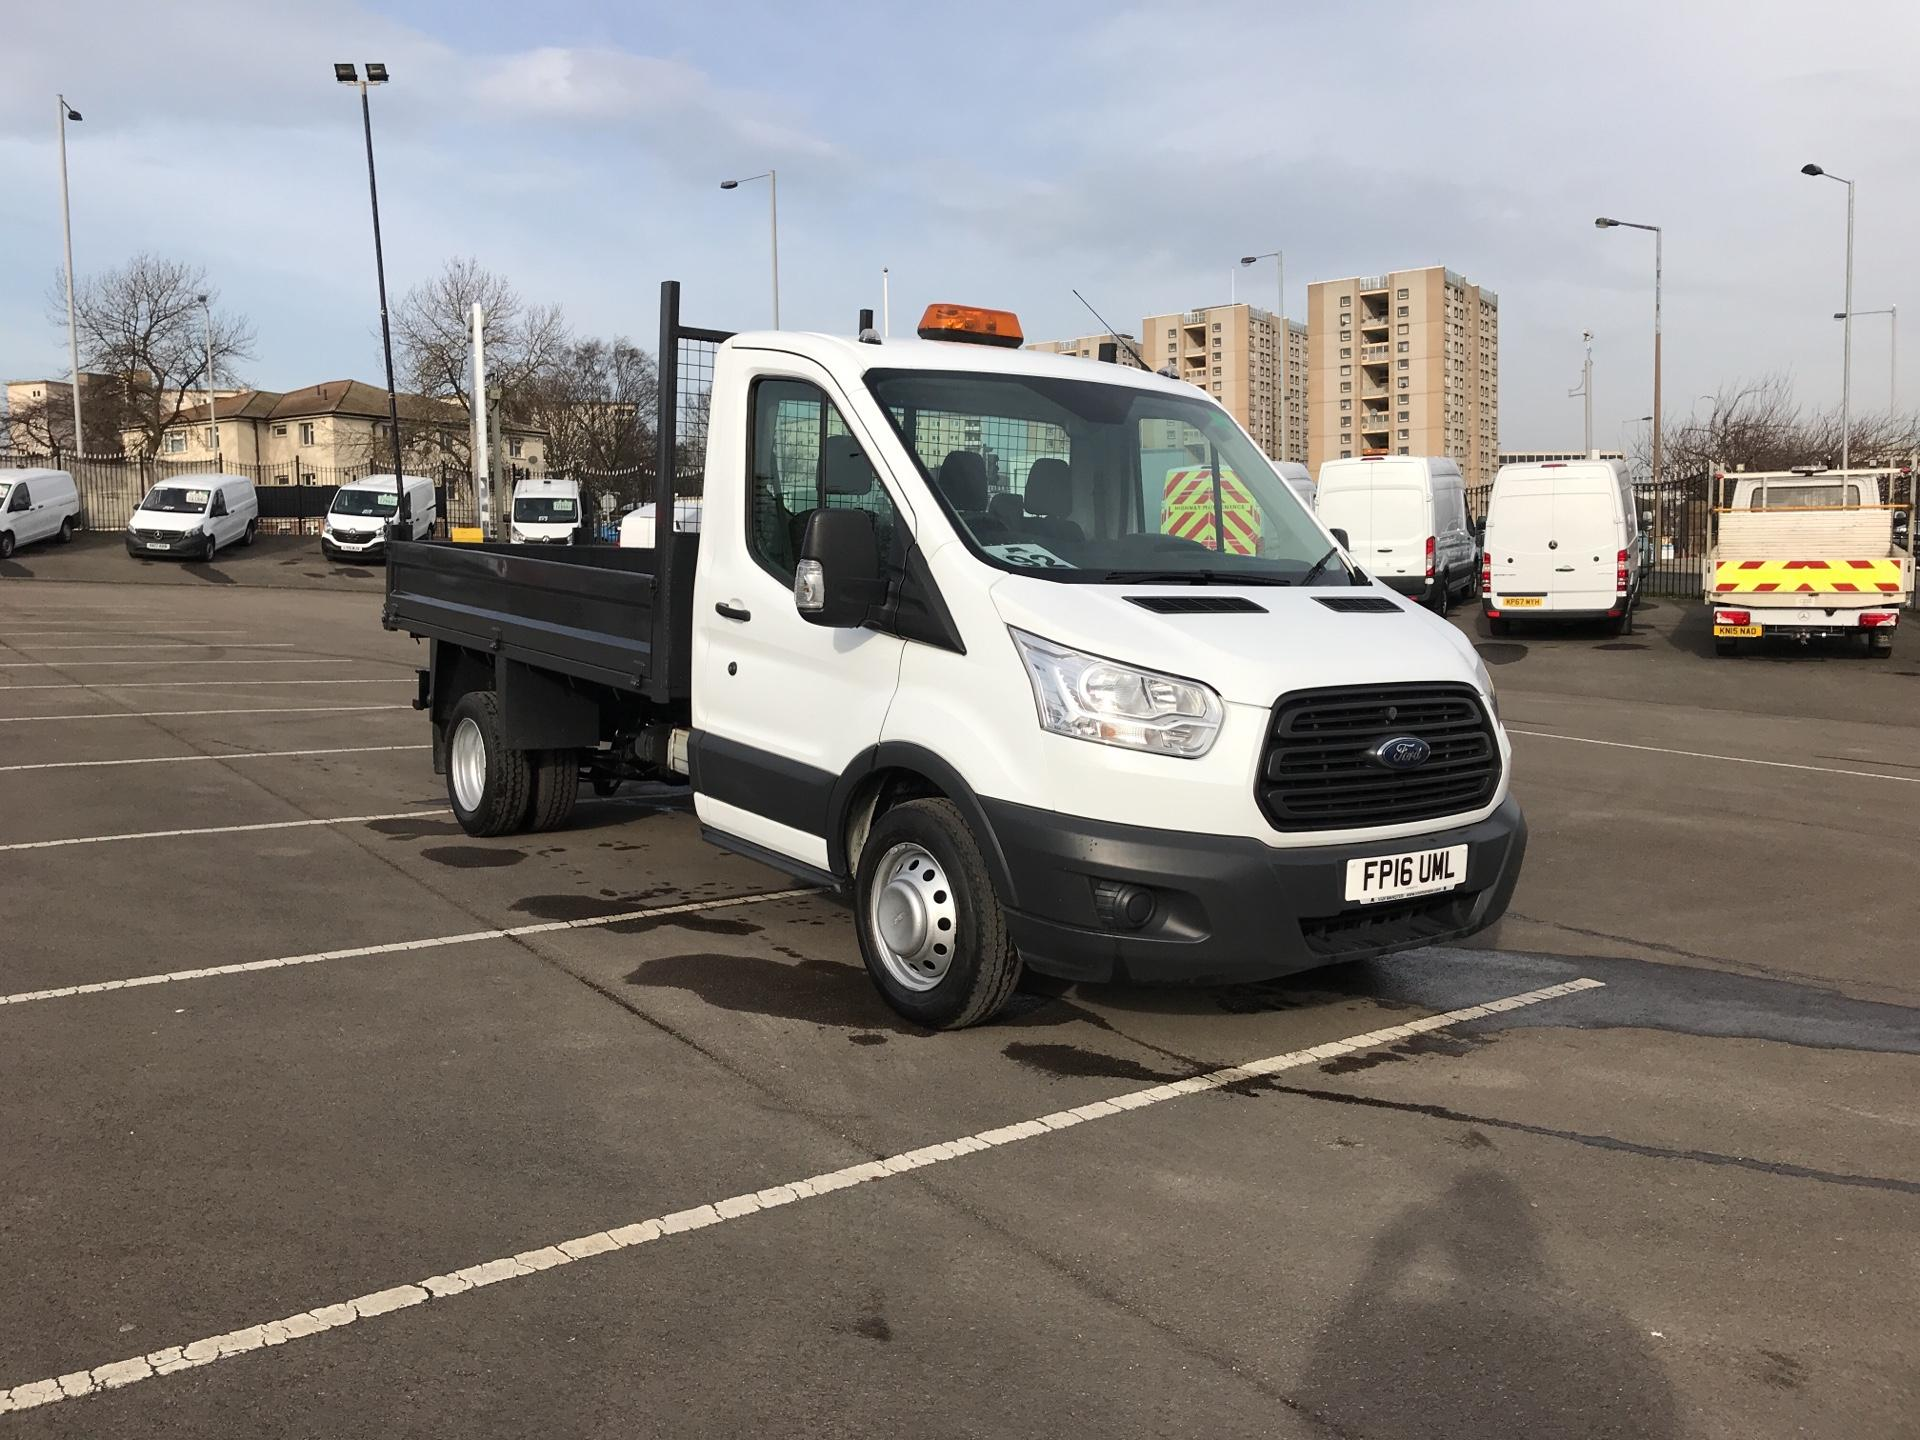 2016 Ford Transit 2.2 Tdci 125Ps SINGLE CAB TIPPER EURO 5 (FP16UML)